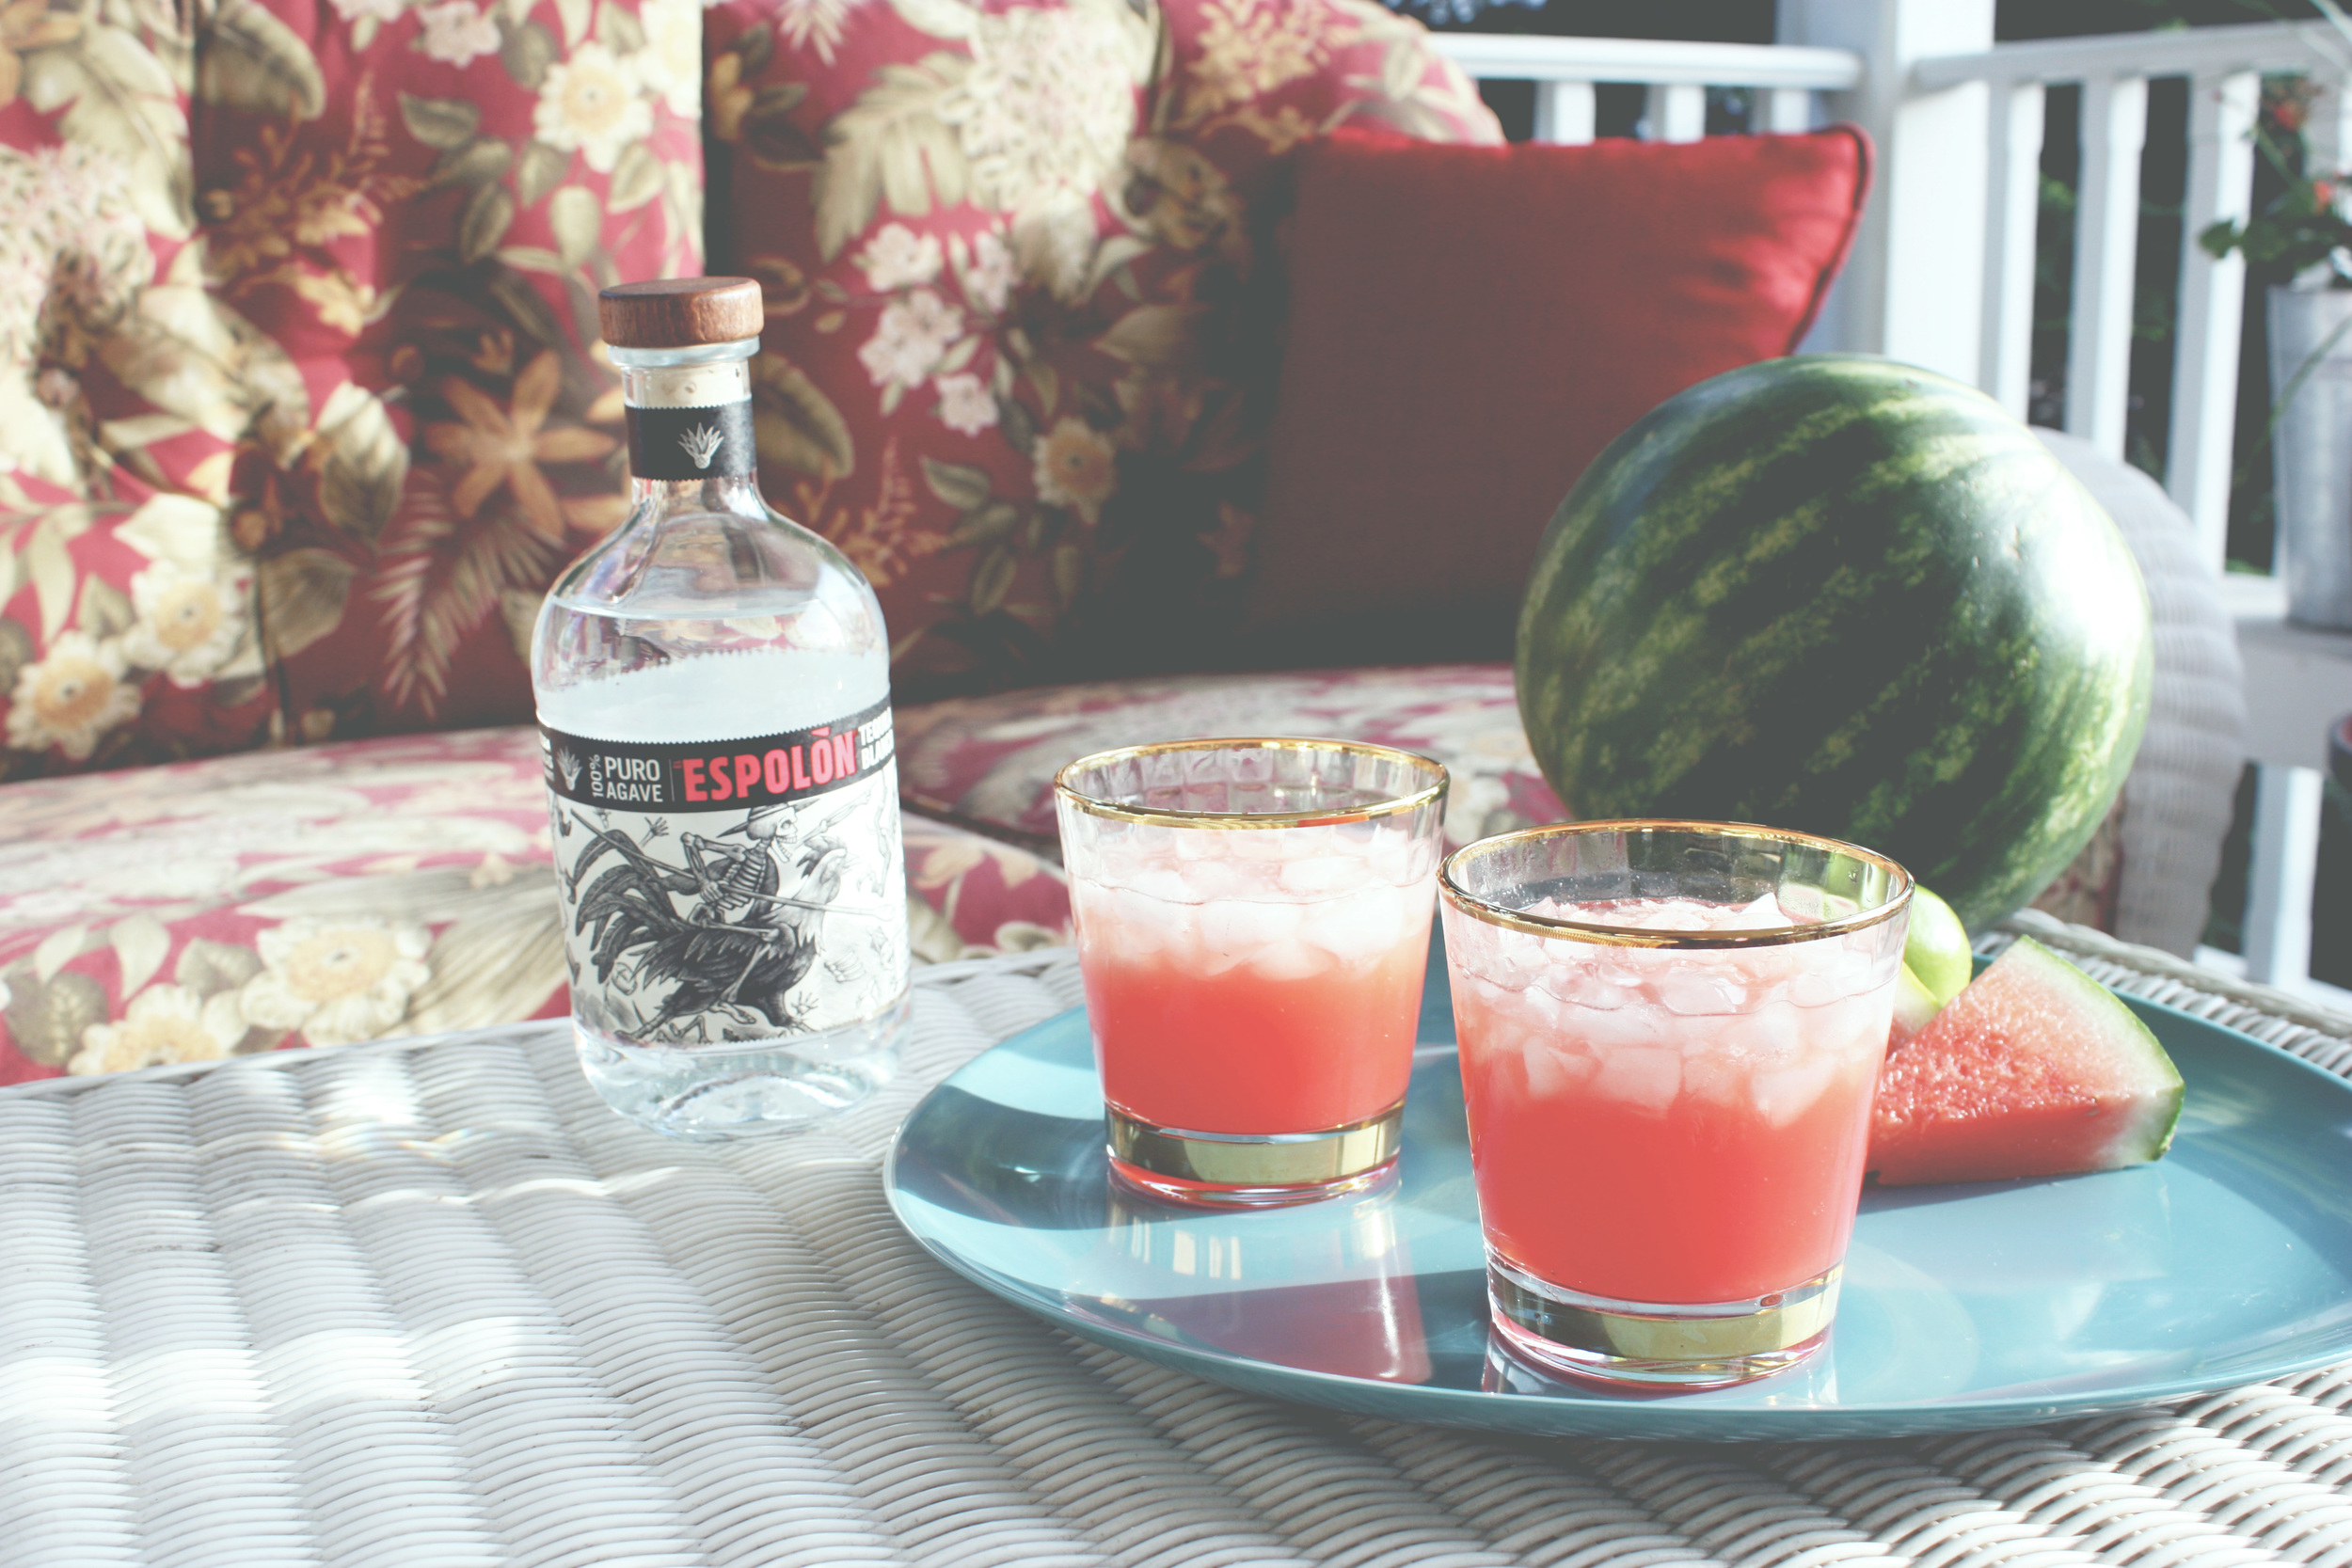 mogblog_thirstythursday_espolon_tequila_margarita_watermelon.jpg